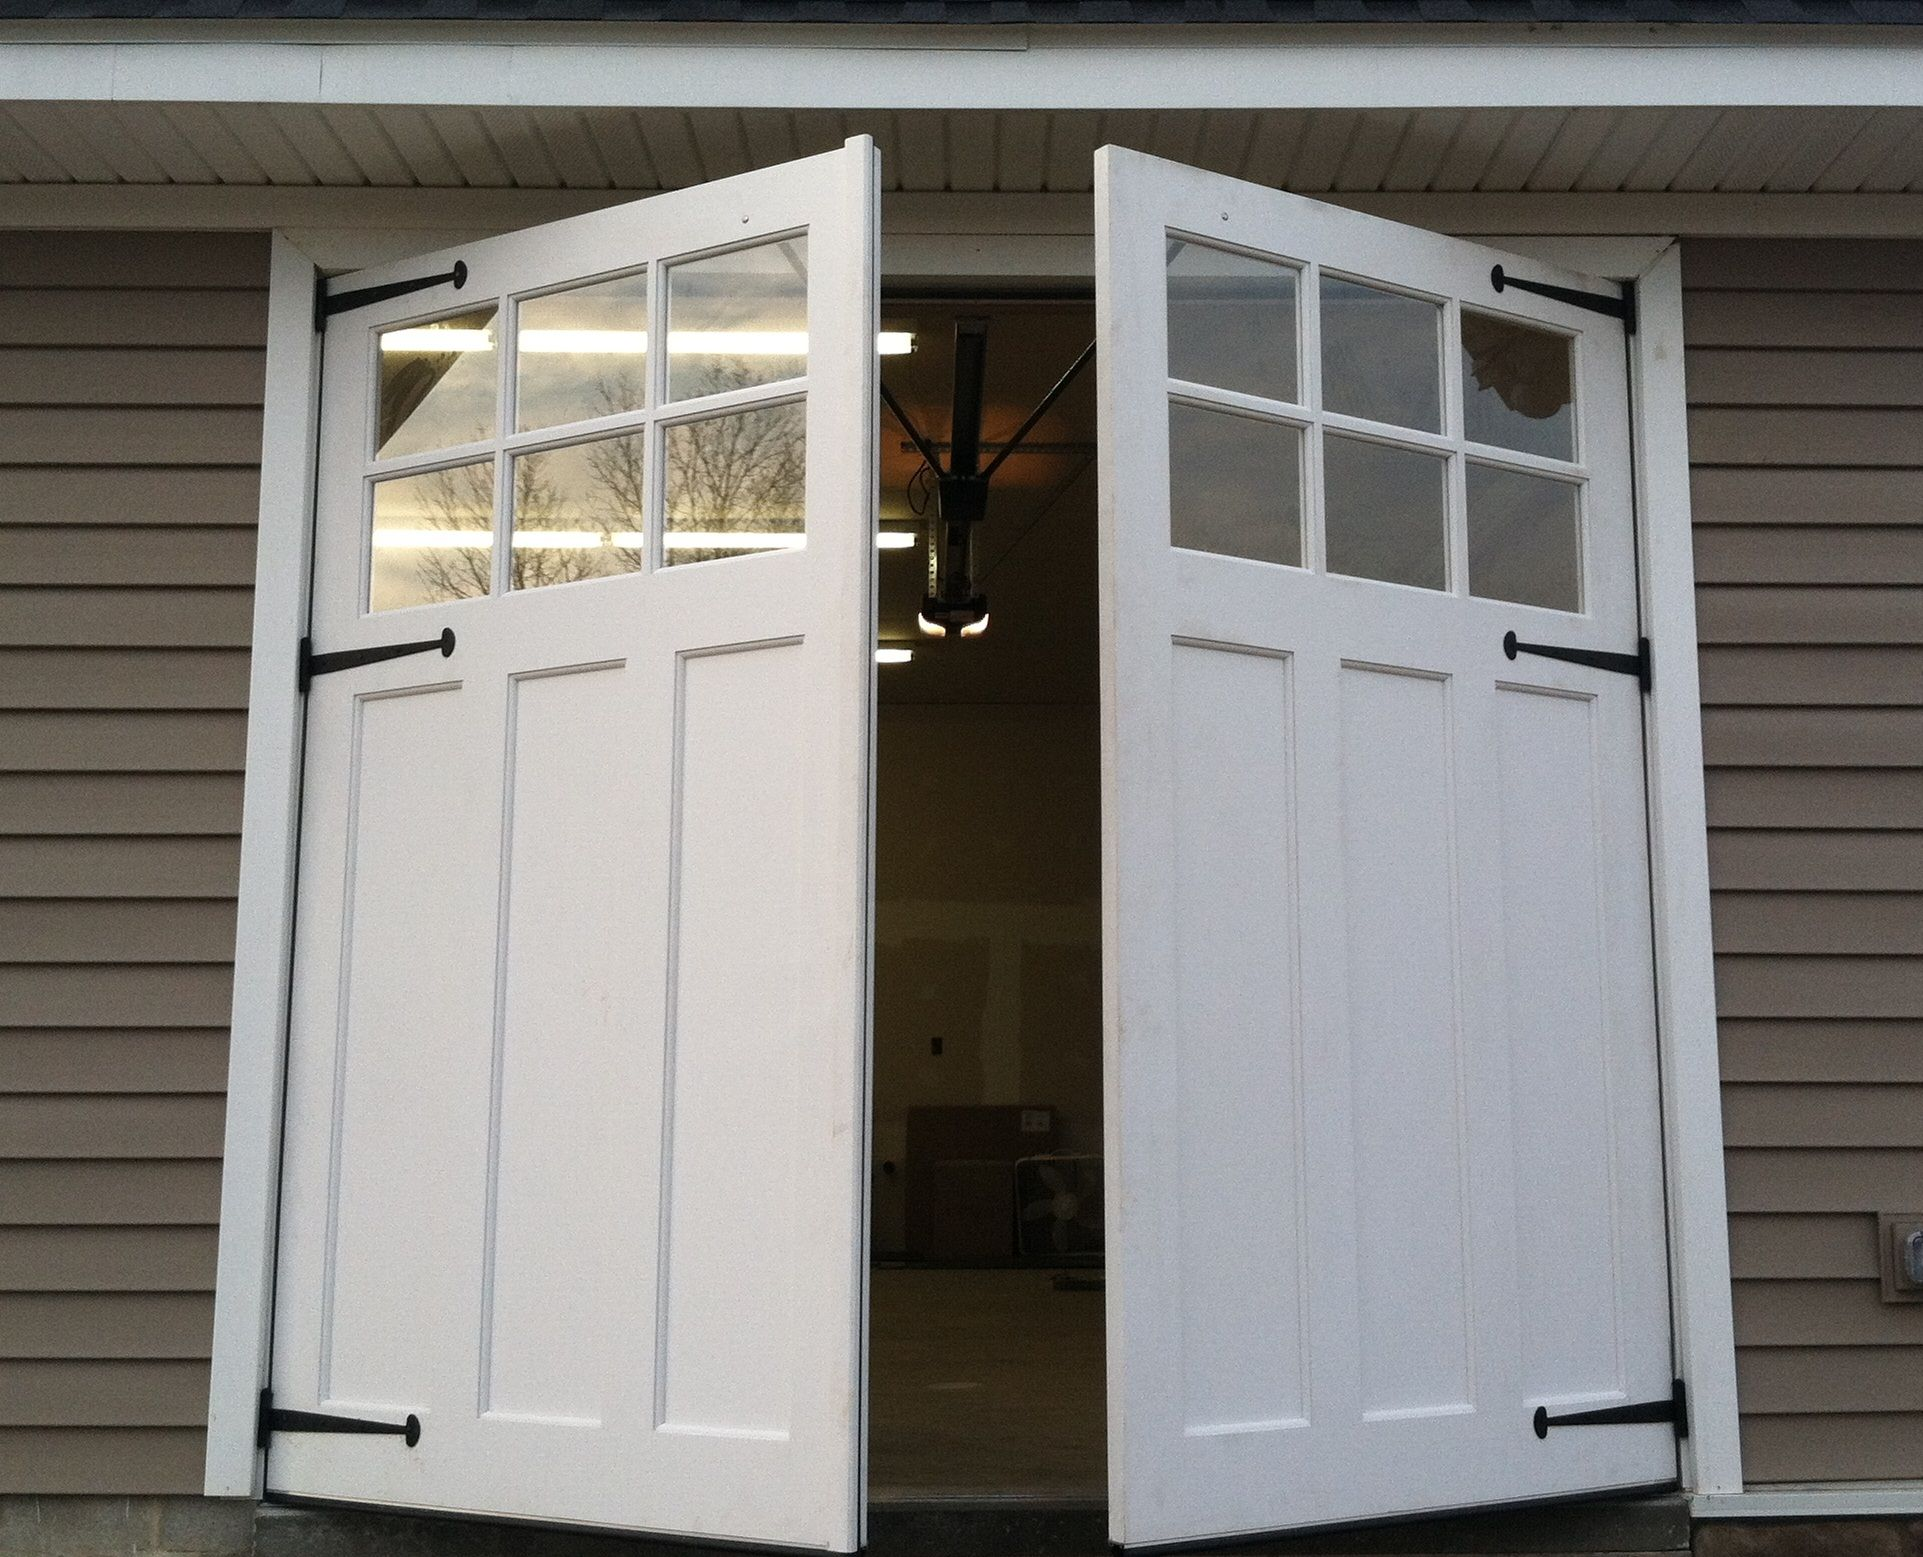 Swing Out Carriage Doors Www Wood Garage Doors Com Garage Doors Diy Garage Door Carriage Doors